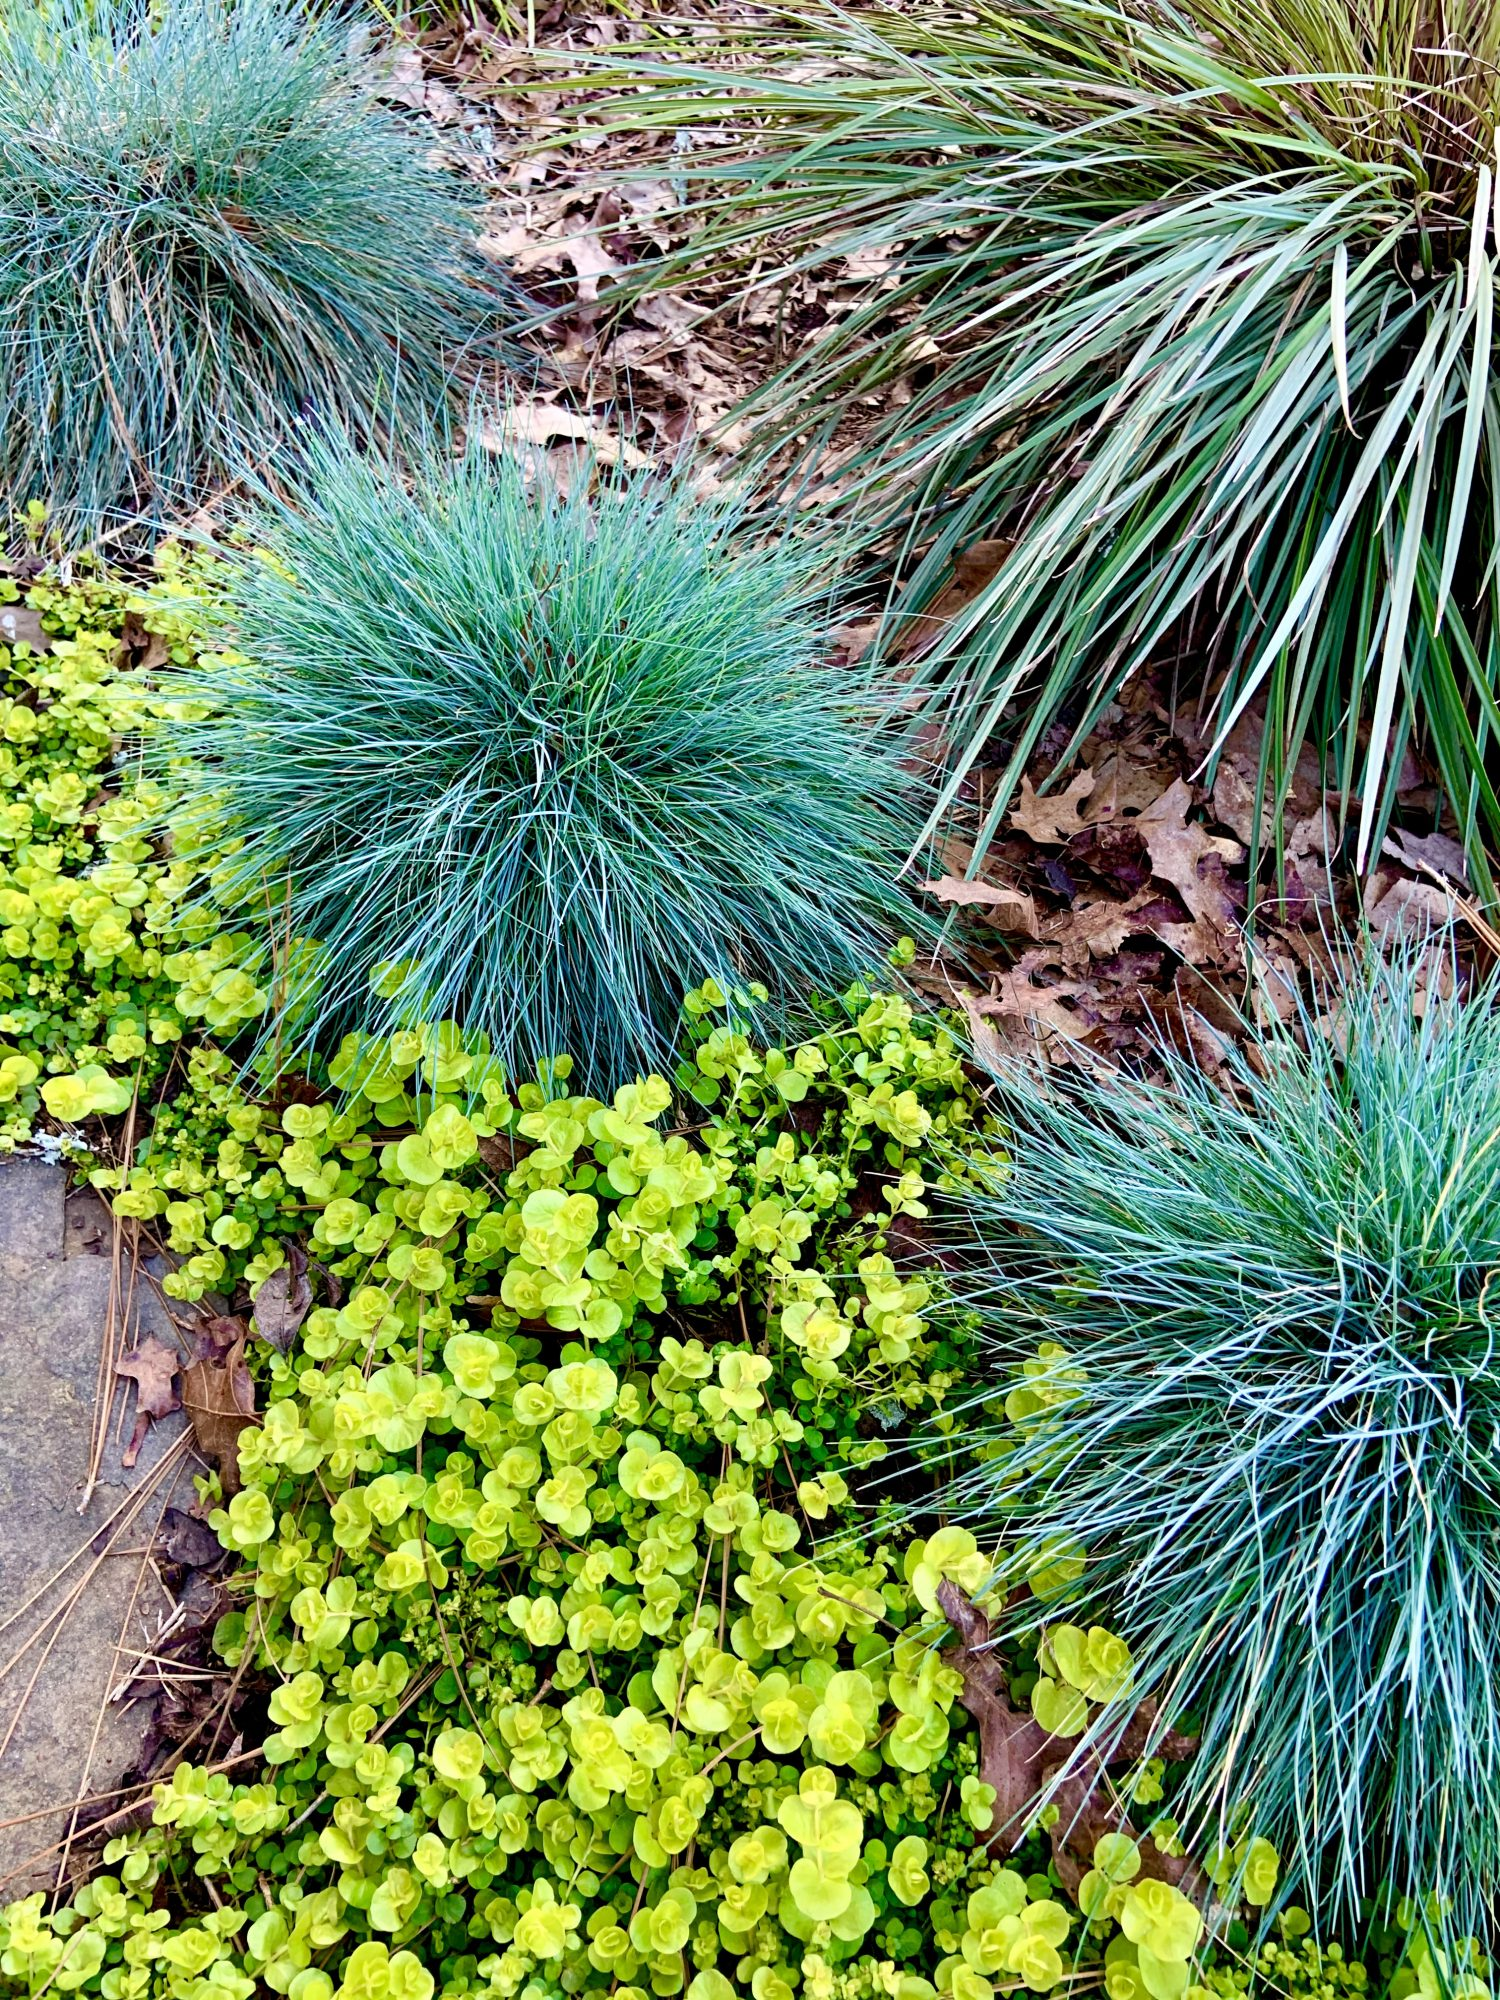 Blue Fescue Plants and Yellow Creeping Jenny Plants